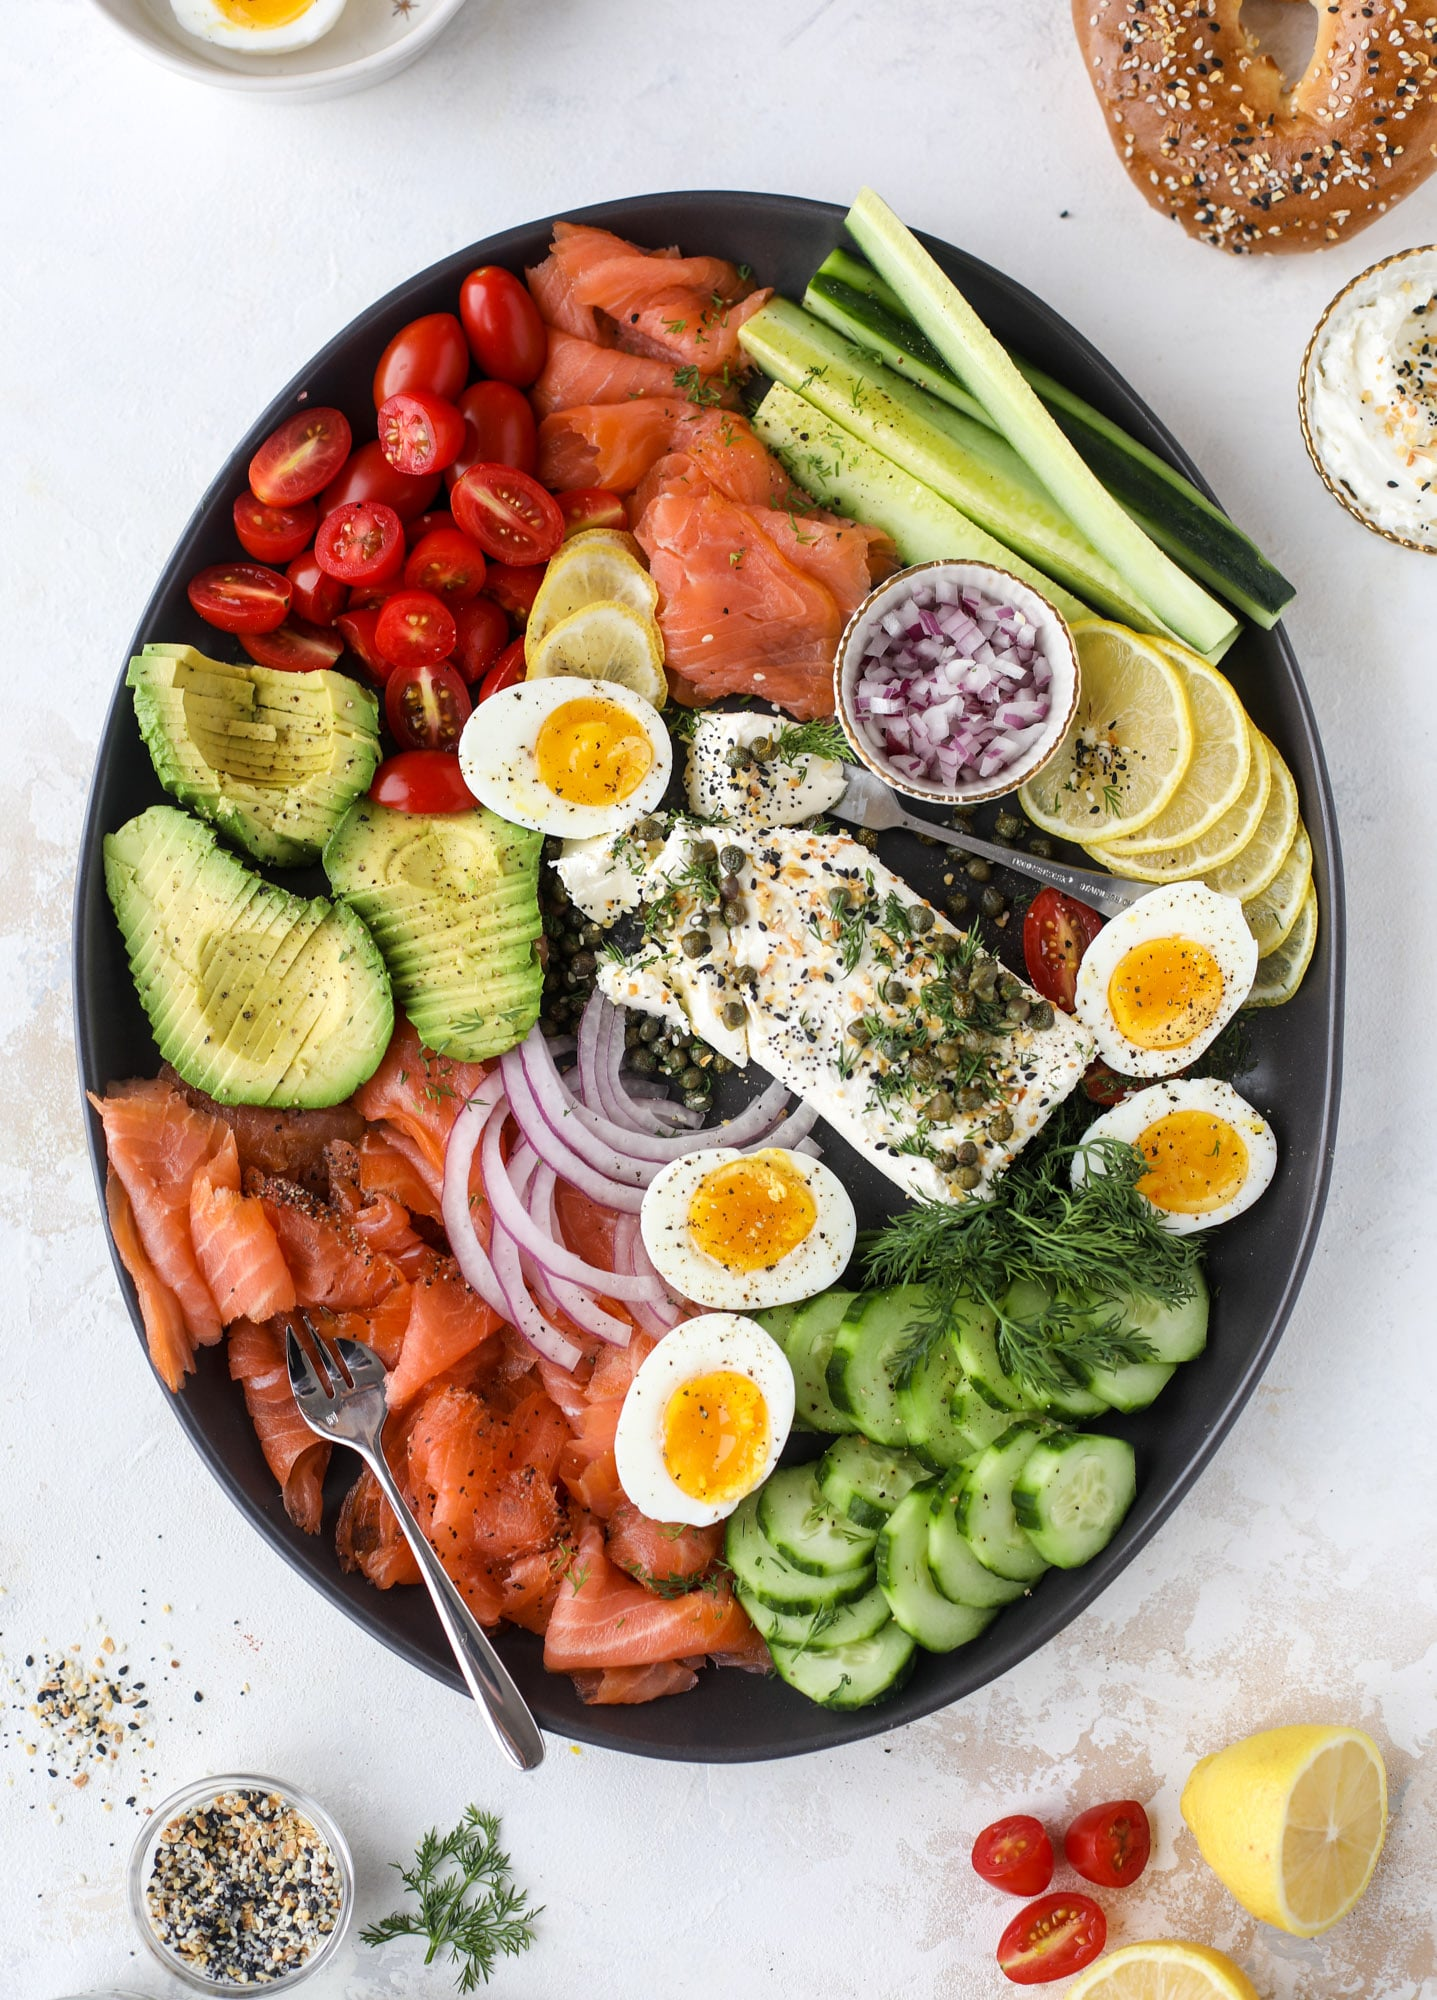 This is my favorite way to make an incredible smoked salmon platter! Fresh smoked salmon with bagels, soft boiled eggs, cream cheese and capers, everything seasoning and so much more. Perfect for holiday breakfasts and brunches! I howsweeteats.com #smokedsalmon #platter